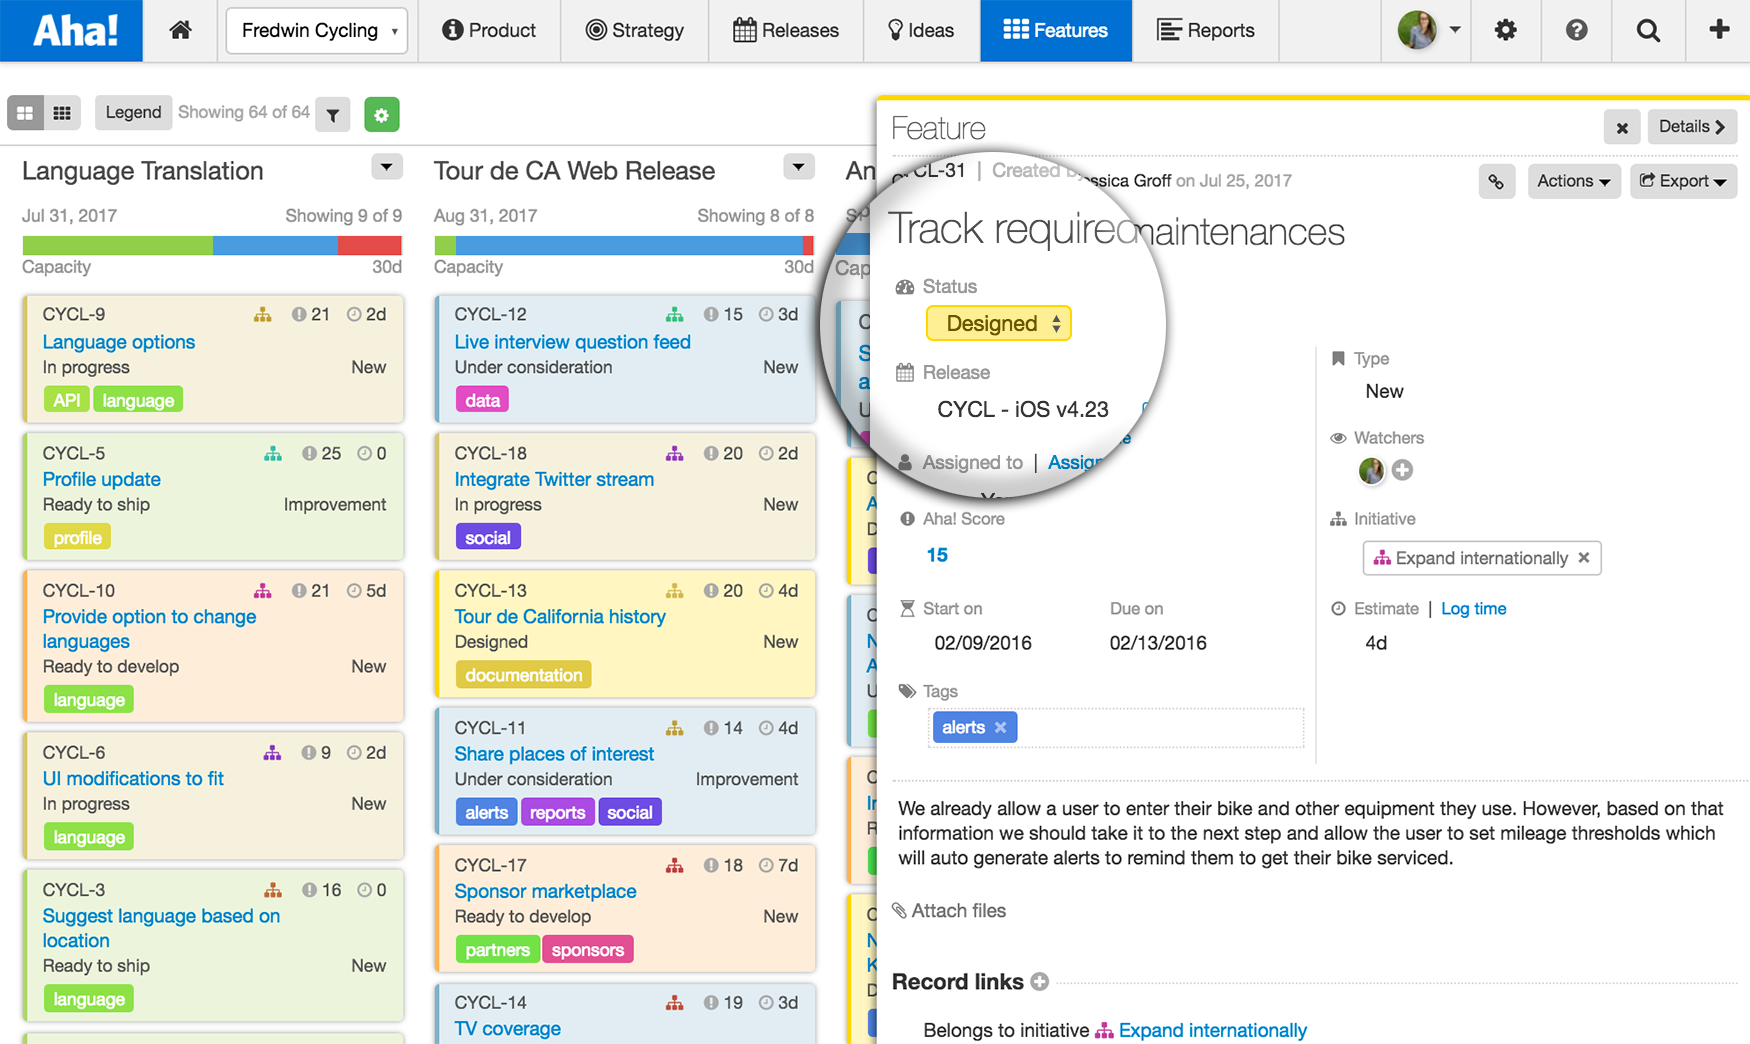 Blog - Just Launched! — Manage Your Product Backlog With an Agile Board - inline image